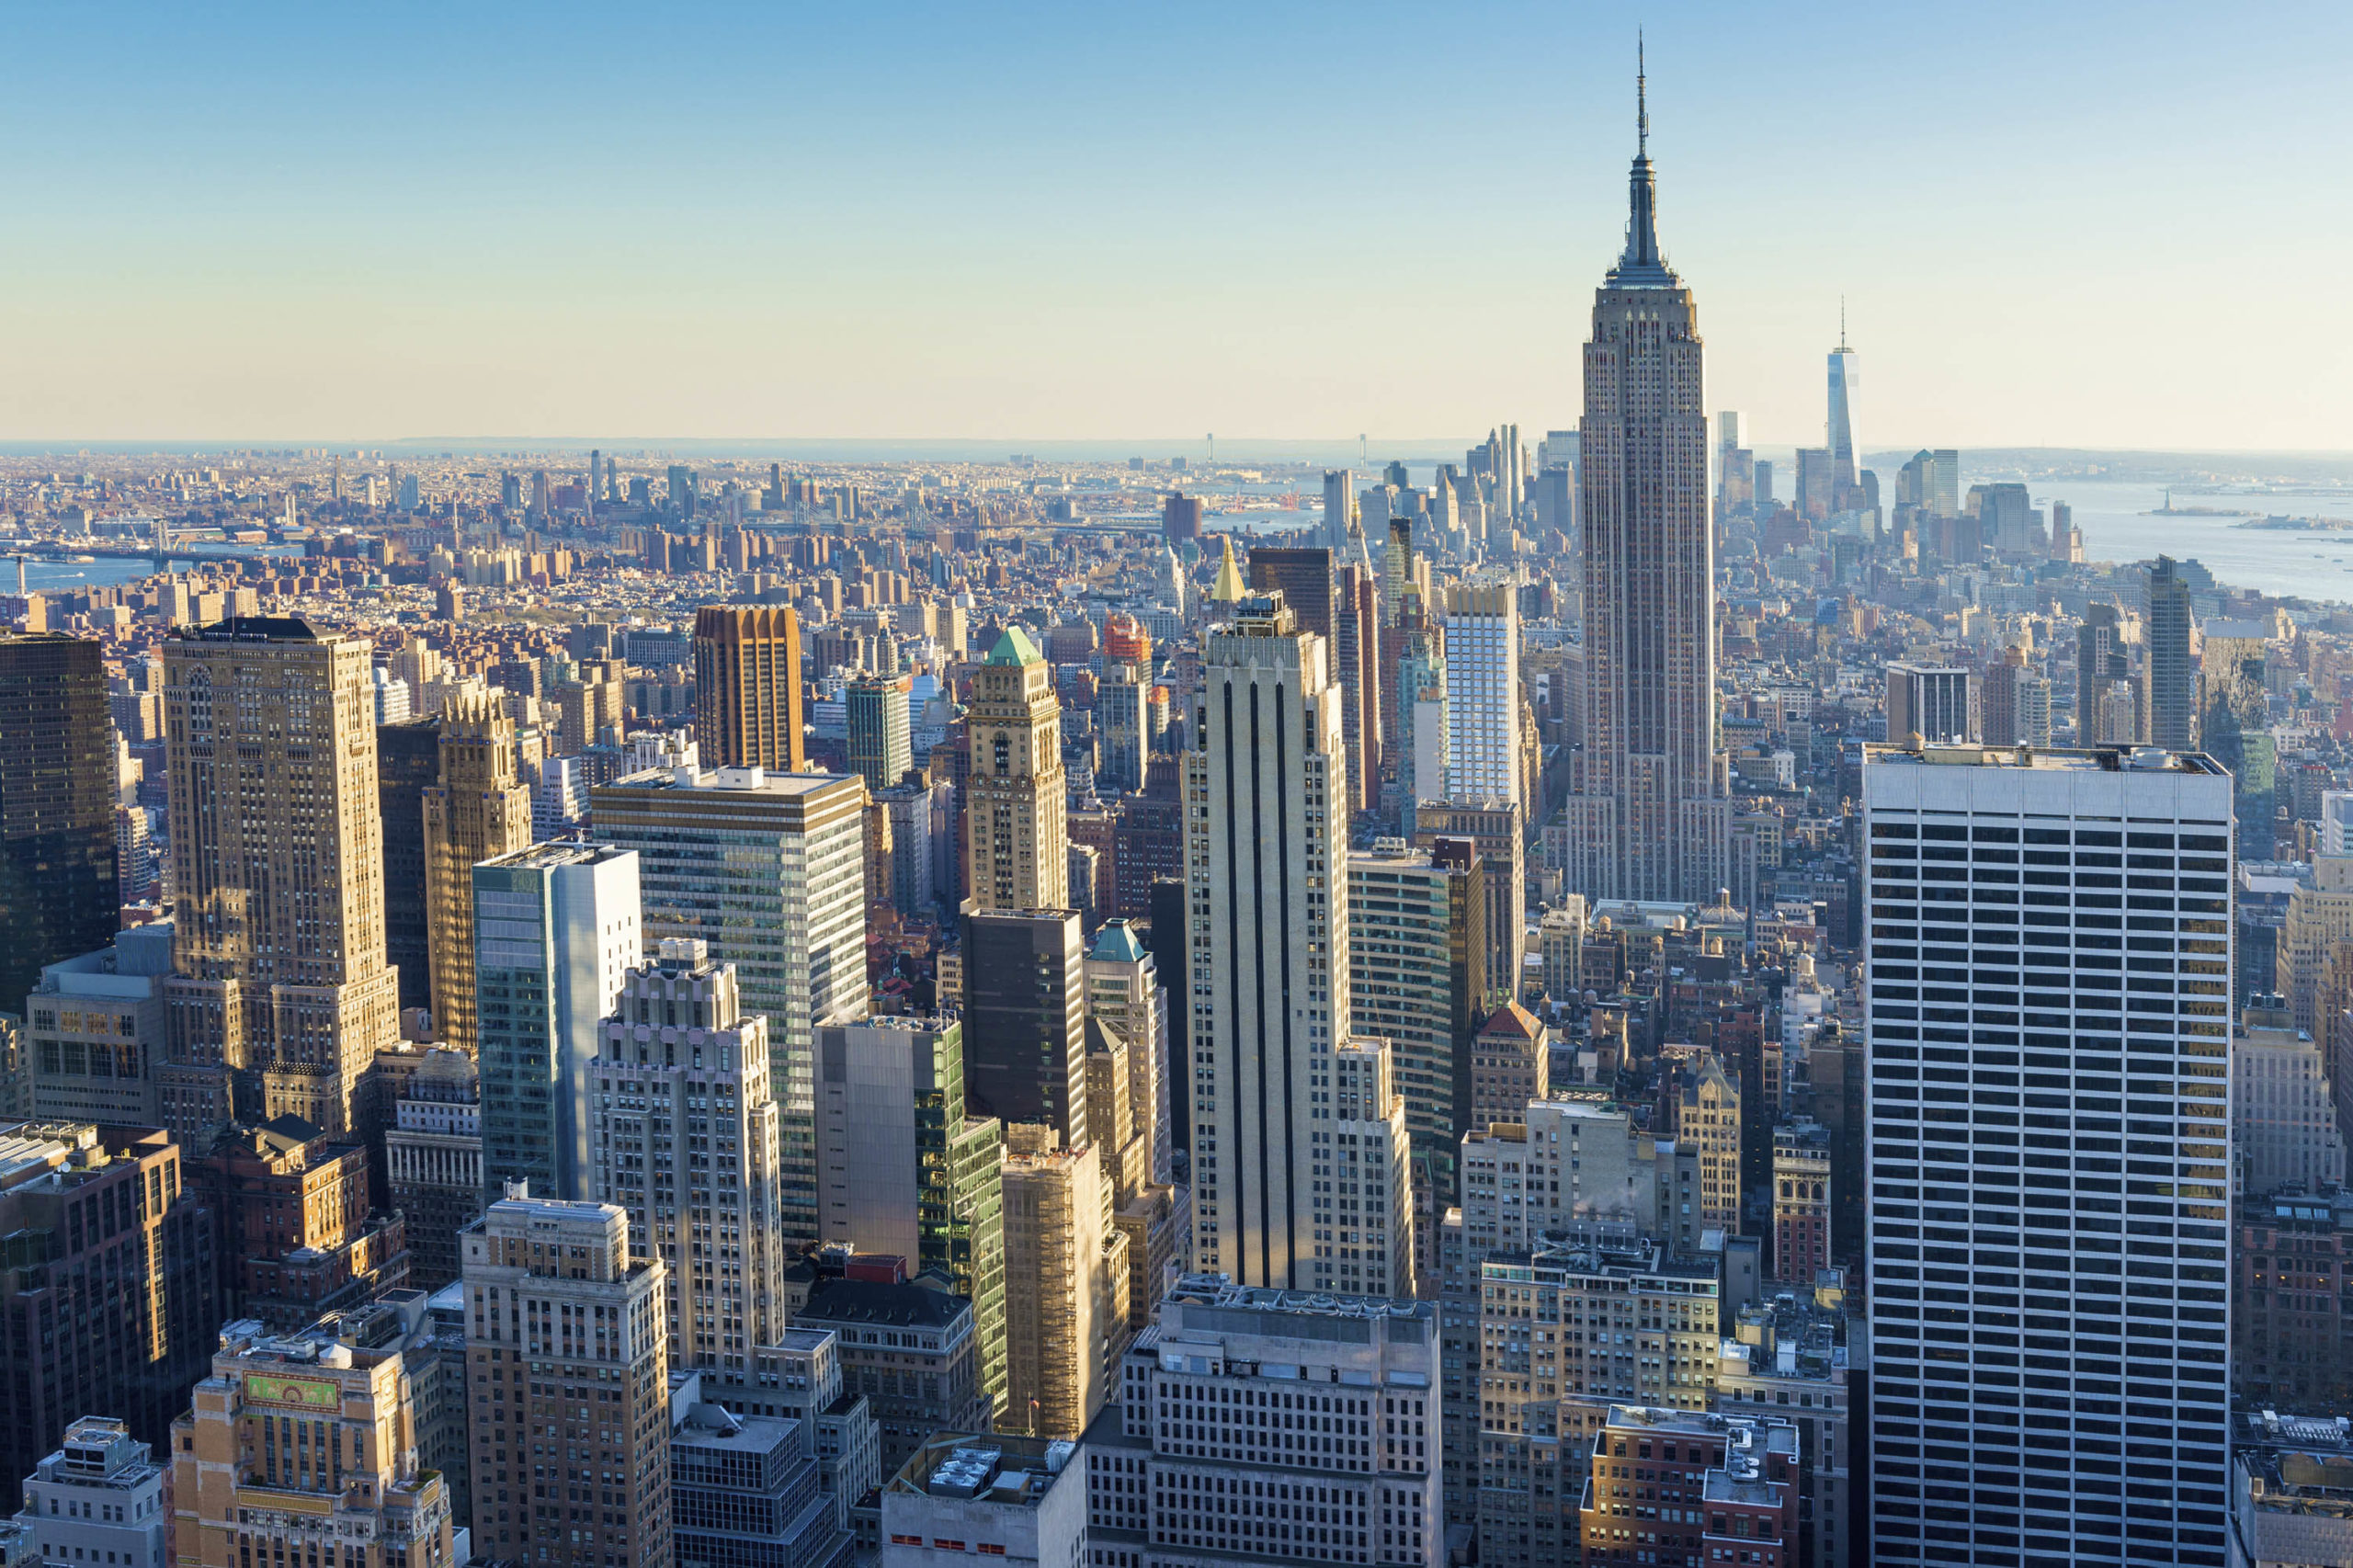 NYC New York City interesting facts